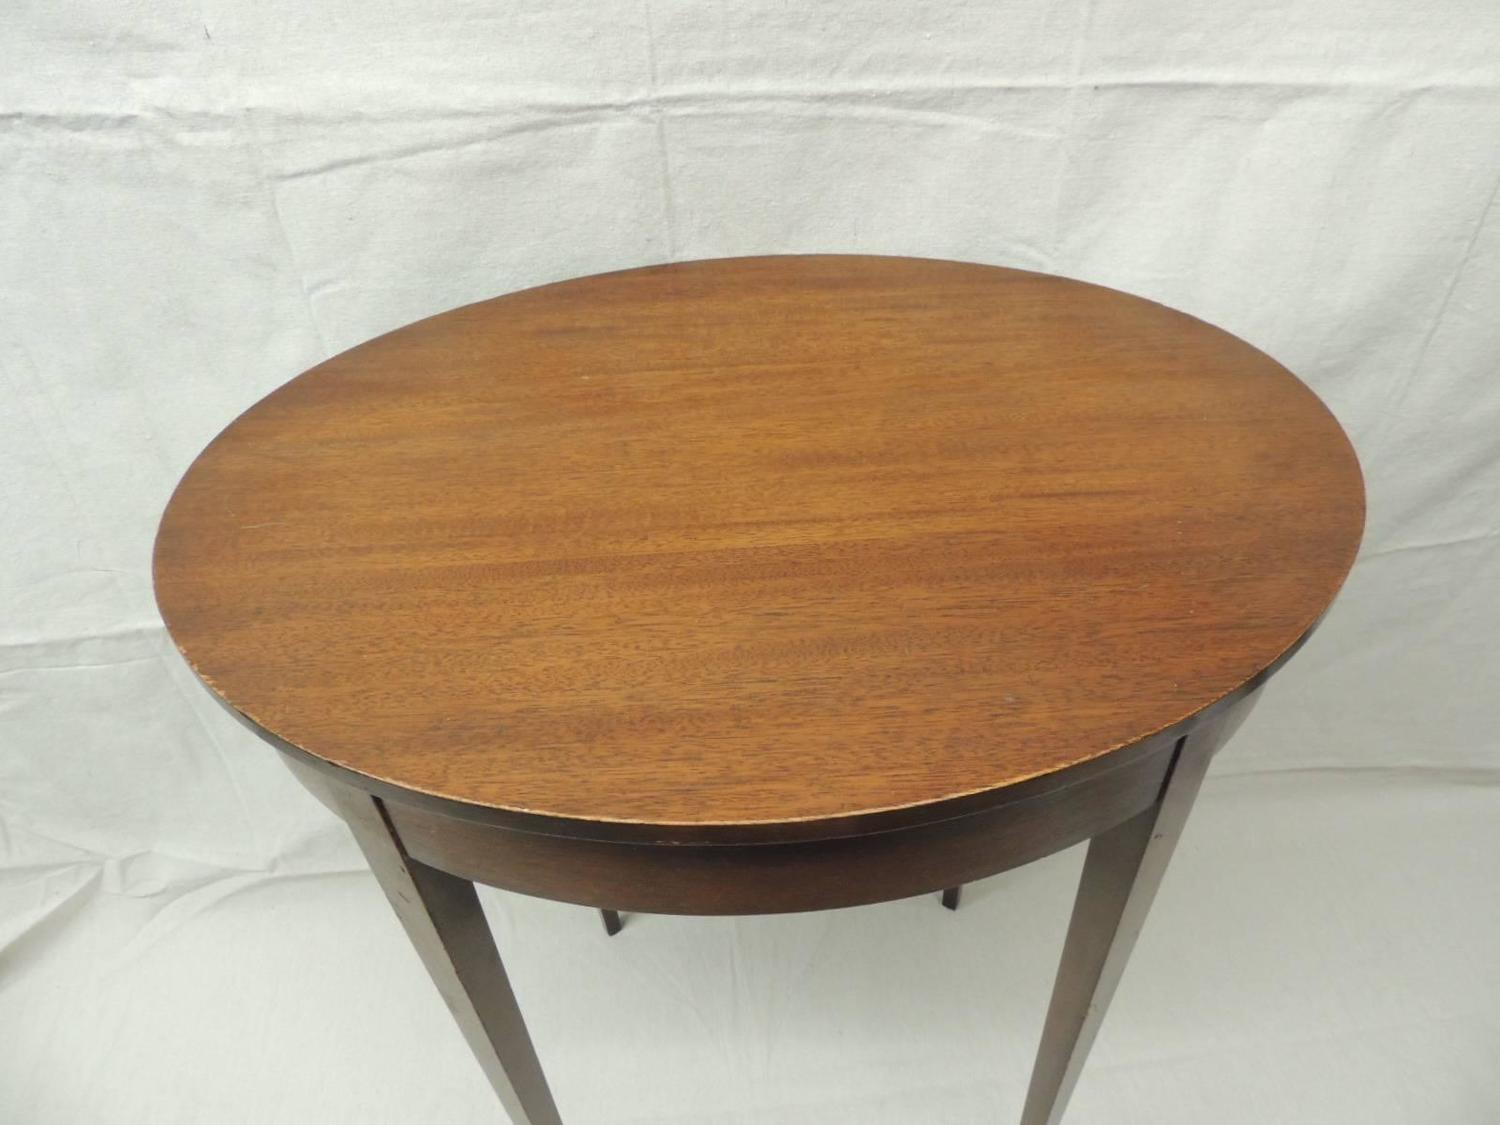 Vintage Oval Wood Side Table With Square Tapered Legs For